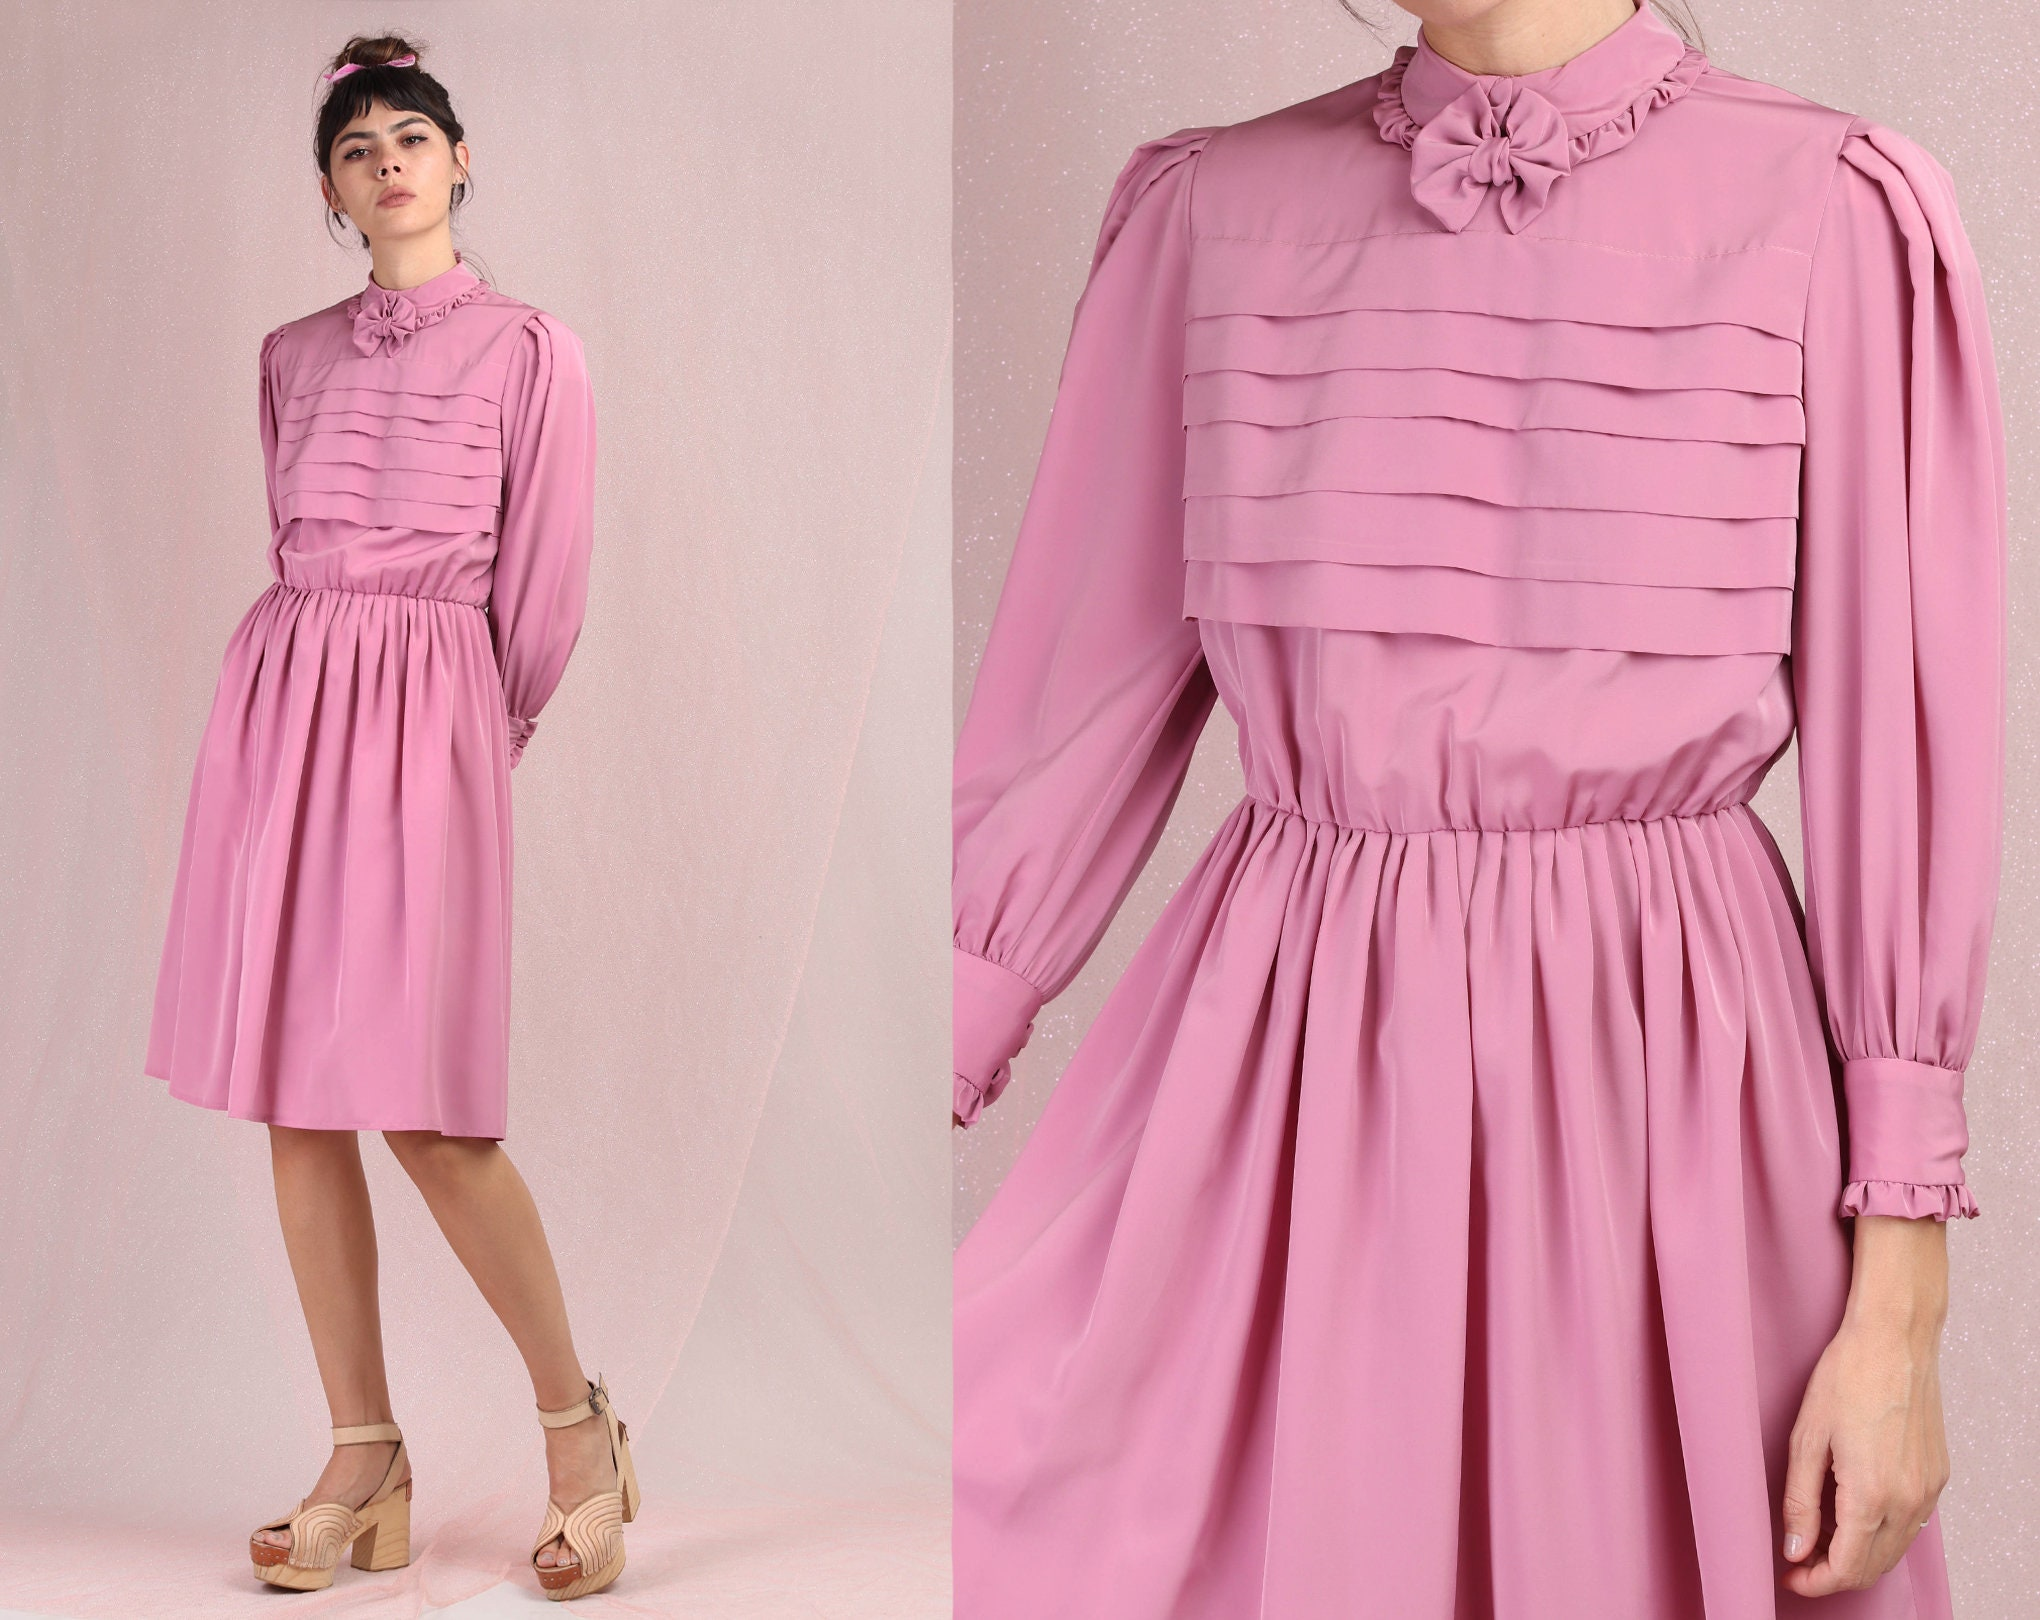 80s Dresses | Casual to Party Dresses 80S Dusty Rose Dress S MBow Tie Collar Secretary Pleated Bodice Romantic Boho Midi Bishop Sleeve Small Medium 1980S $25.99 AT vintagedancer.com